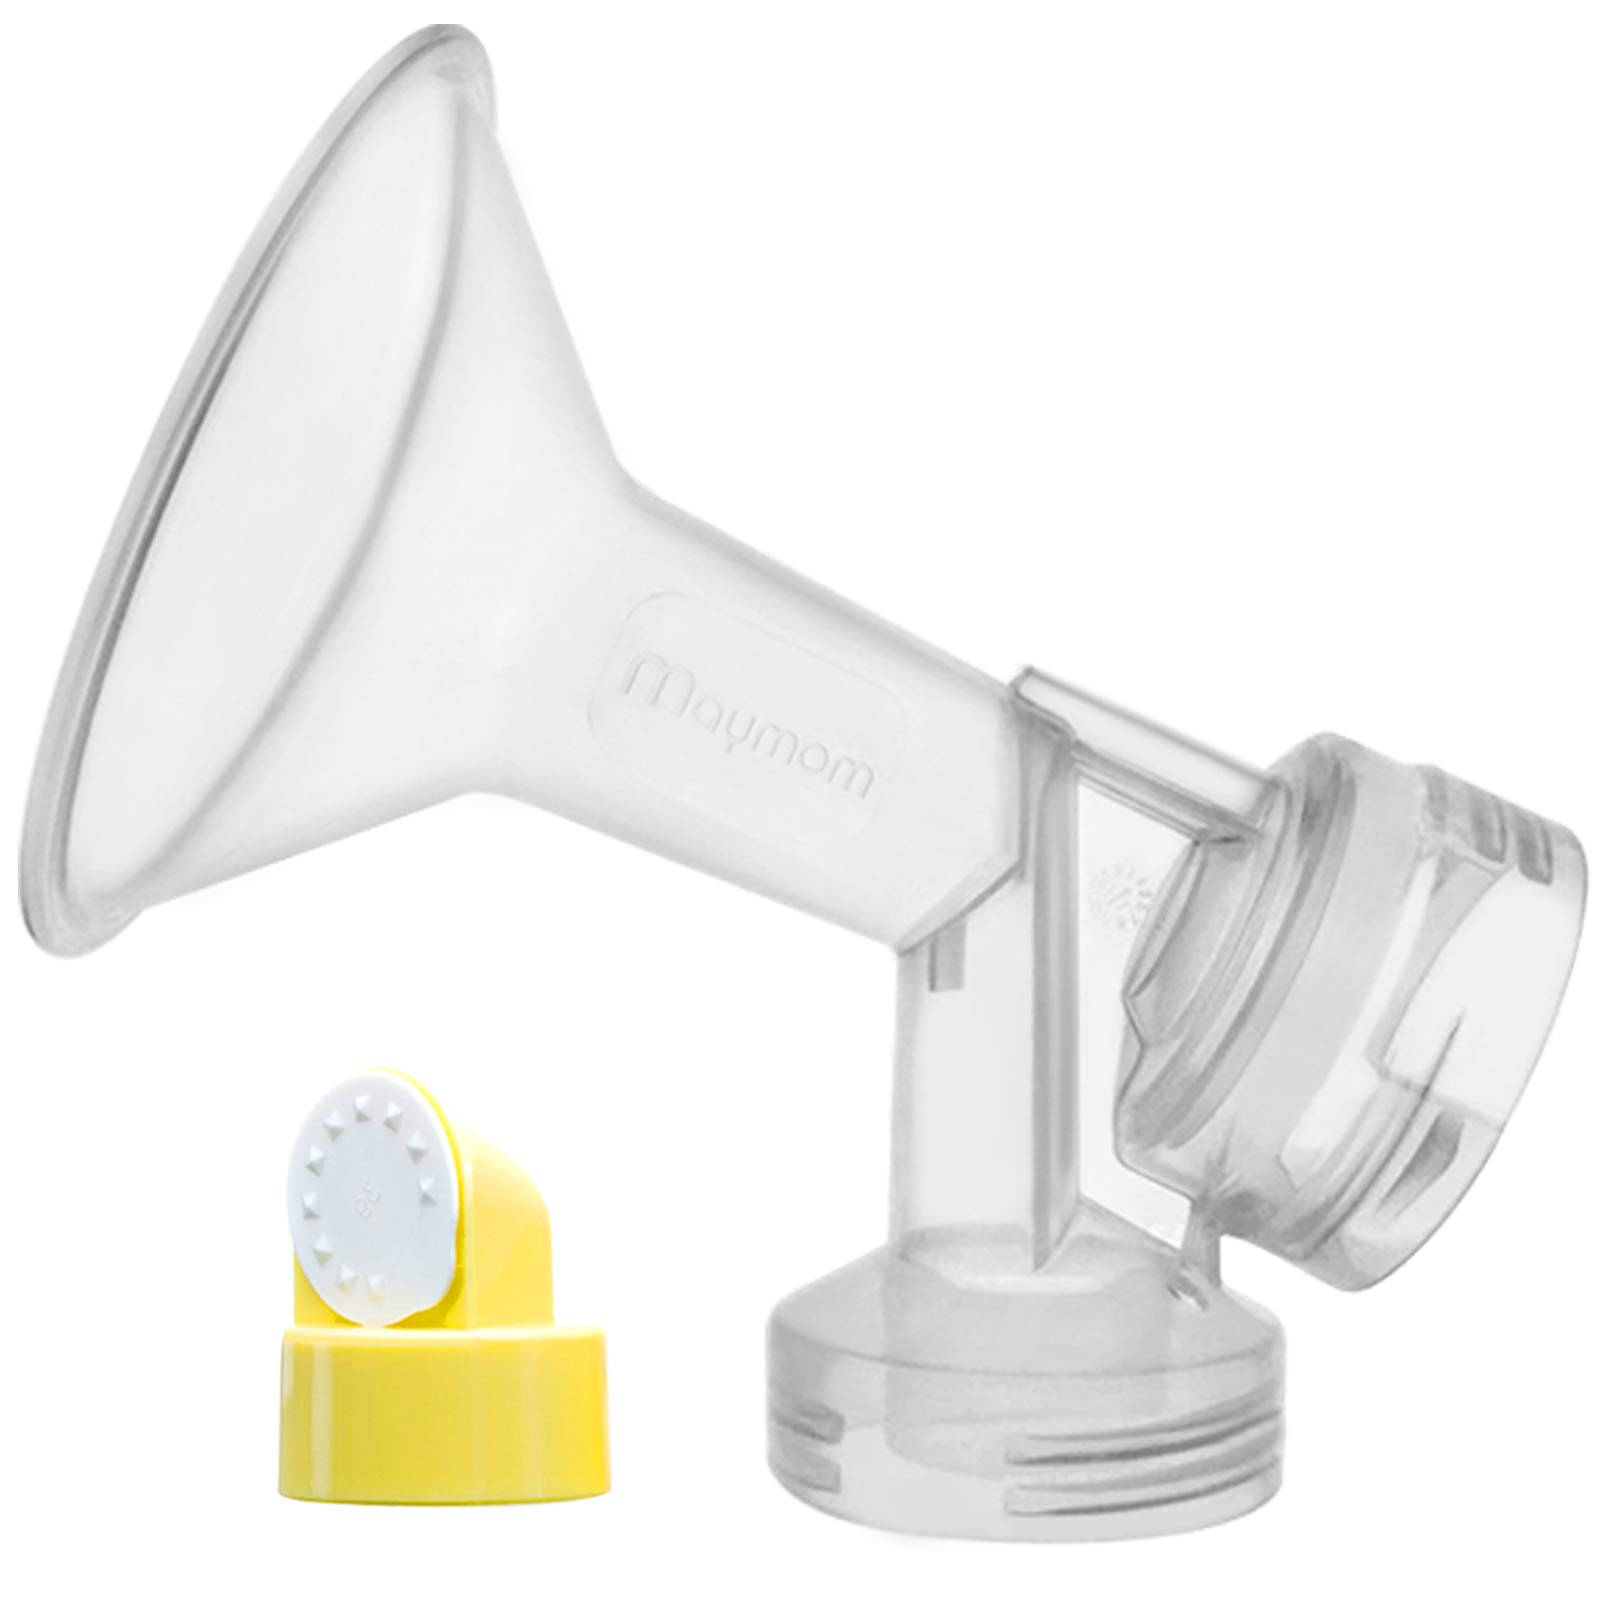 Maymom Breast Shield with Valve and Membrane for Medela Breast Pumps (15 mm, 1- Piece)